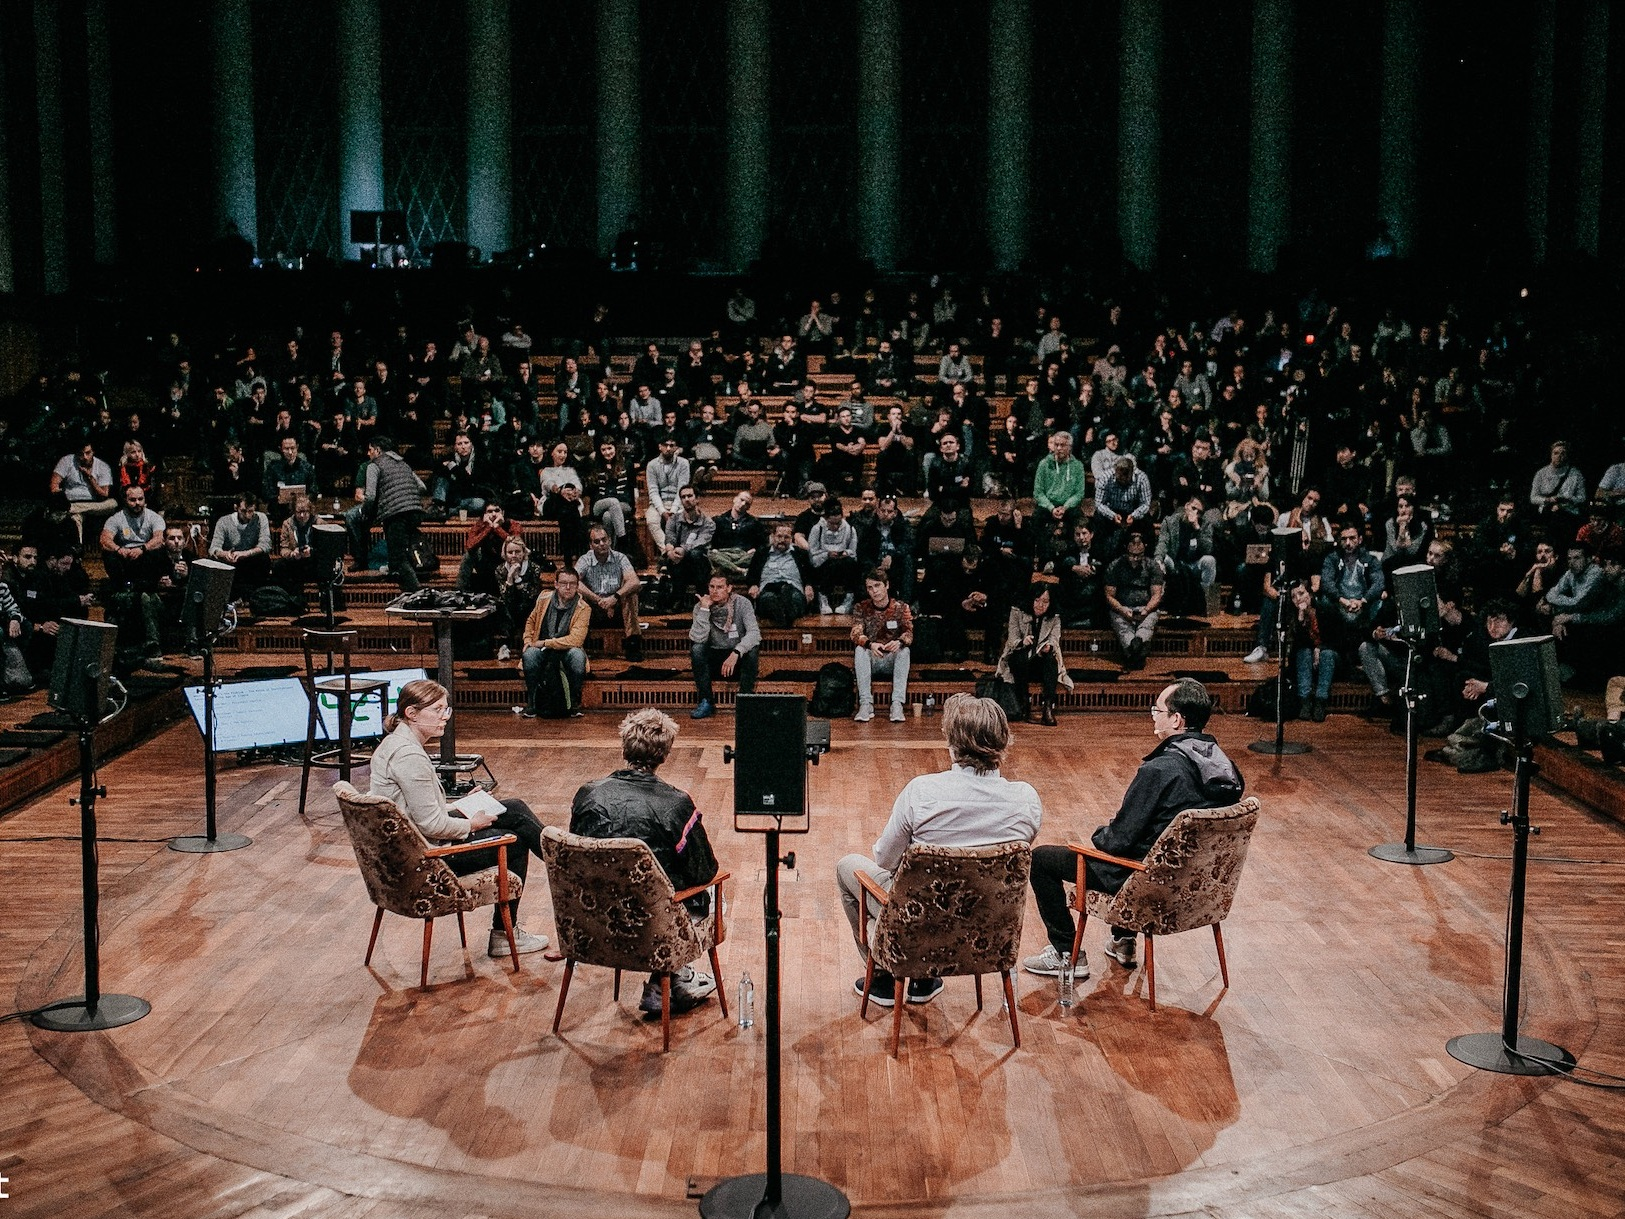 Web 3 Summit - - Berlin -We had the pleasure of contributing thoughts on the value of institutional investors